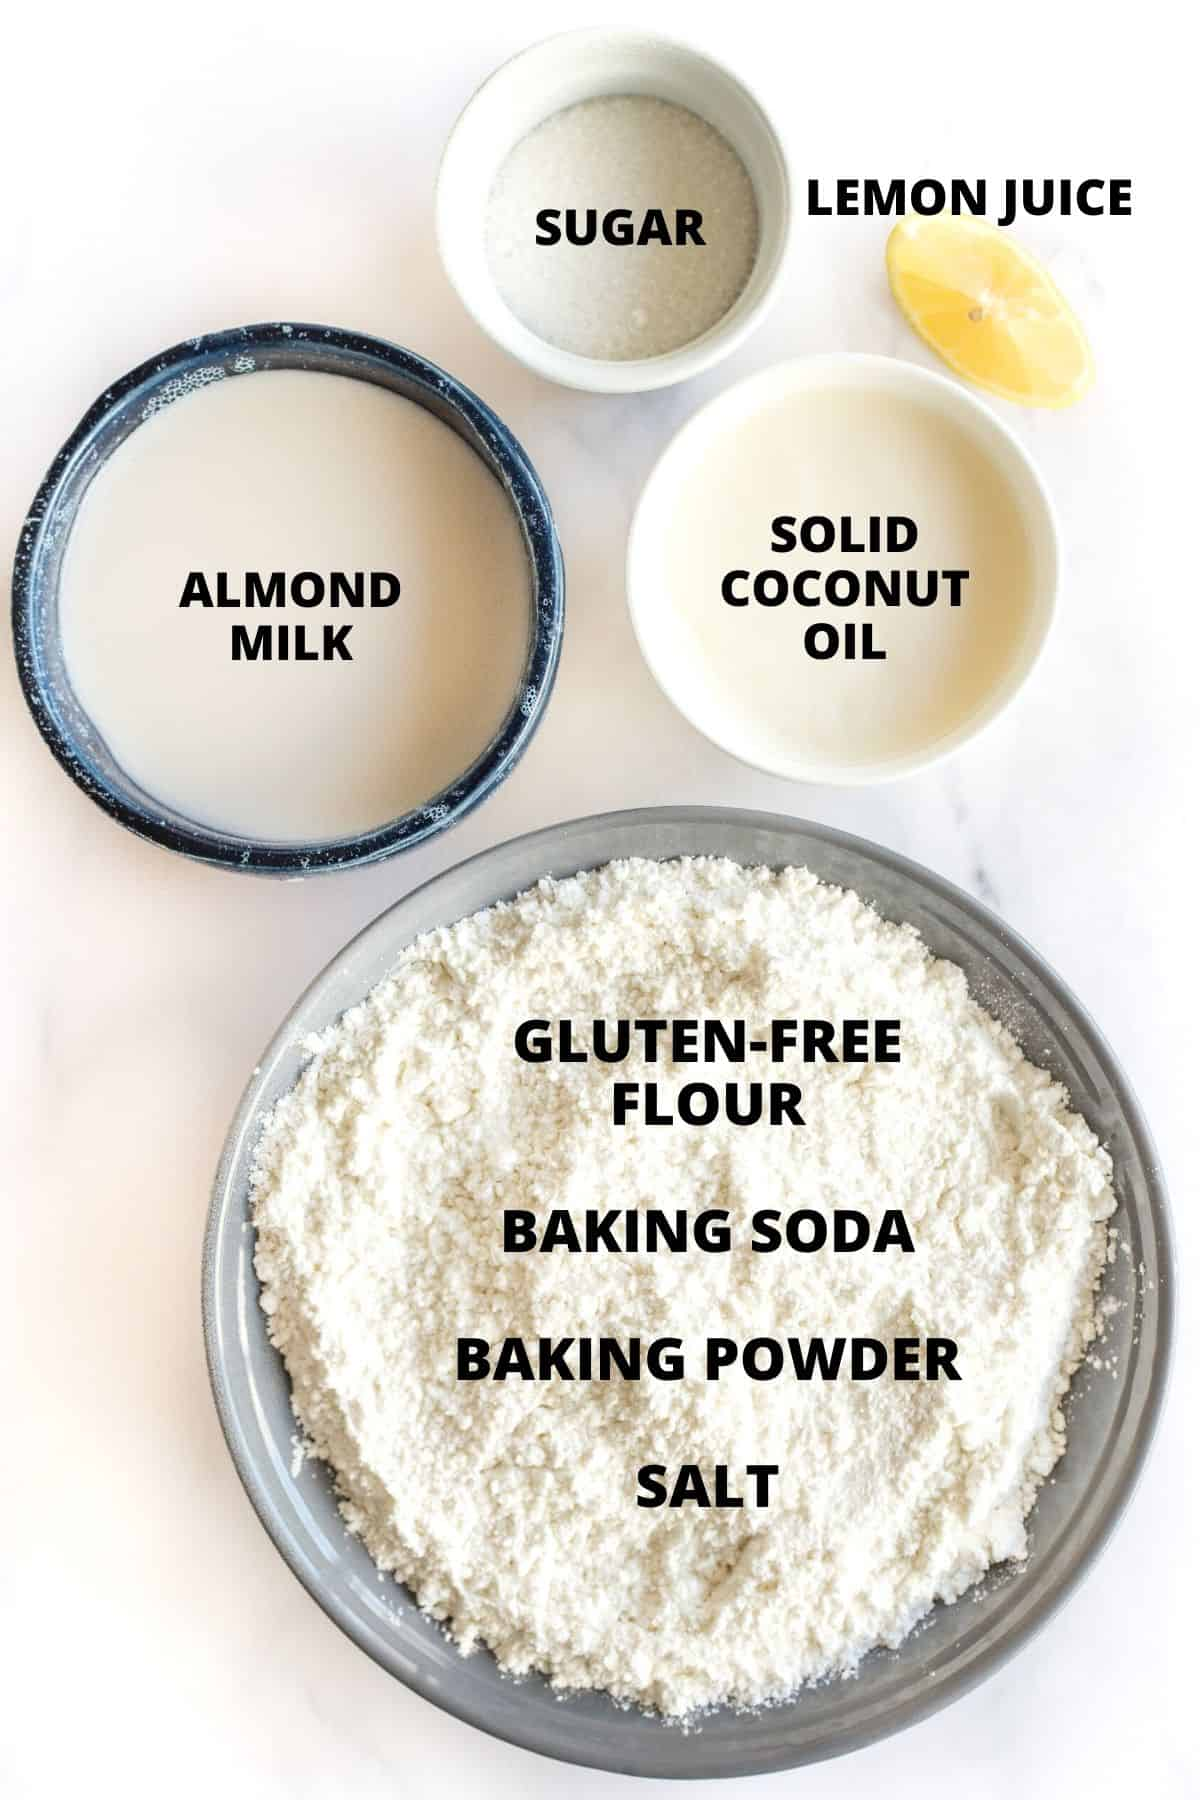 Ingredients laid out for making gluten-free Irish soda bread.